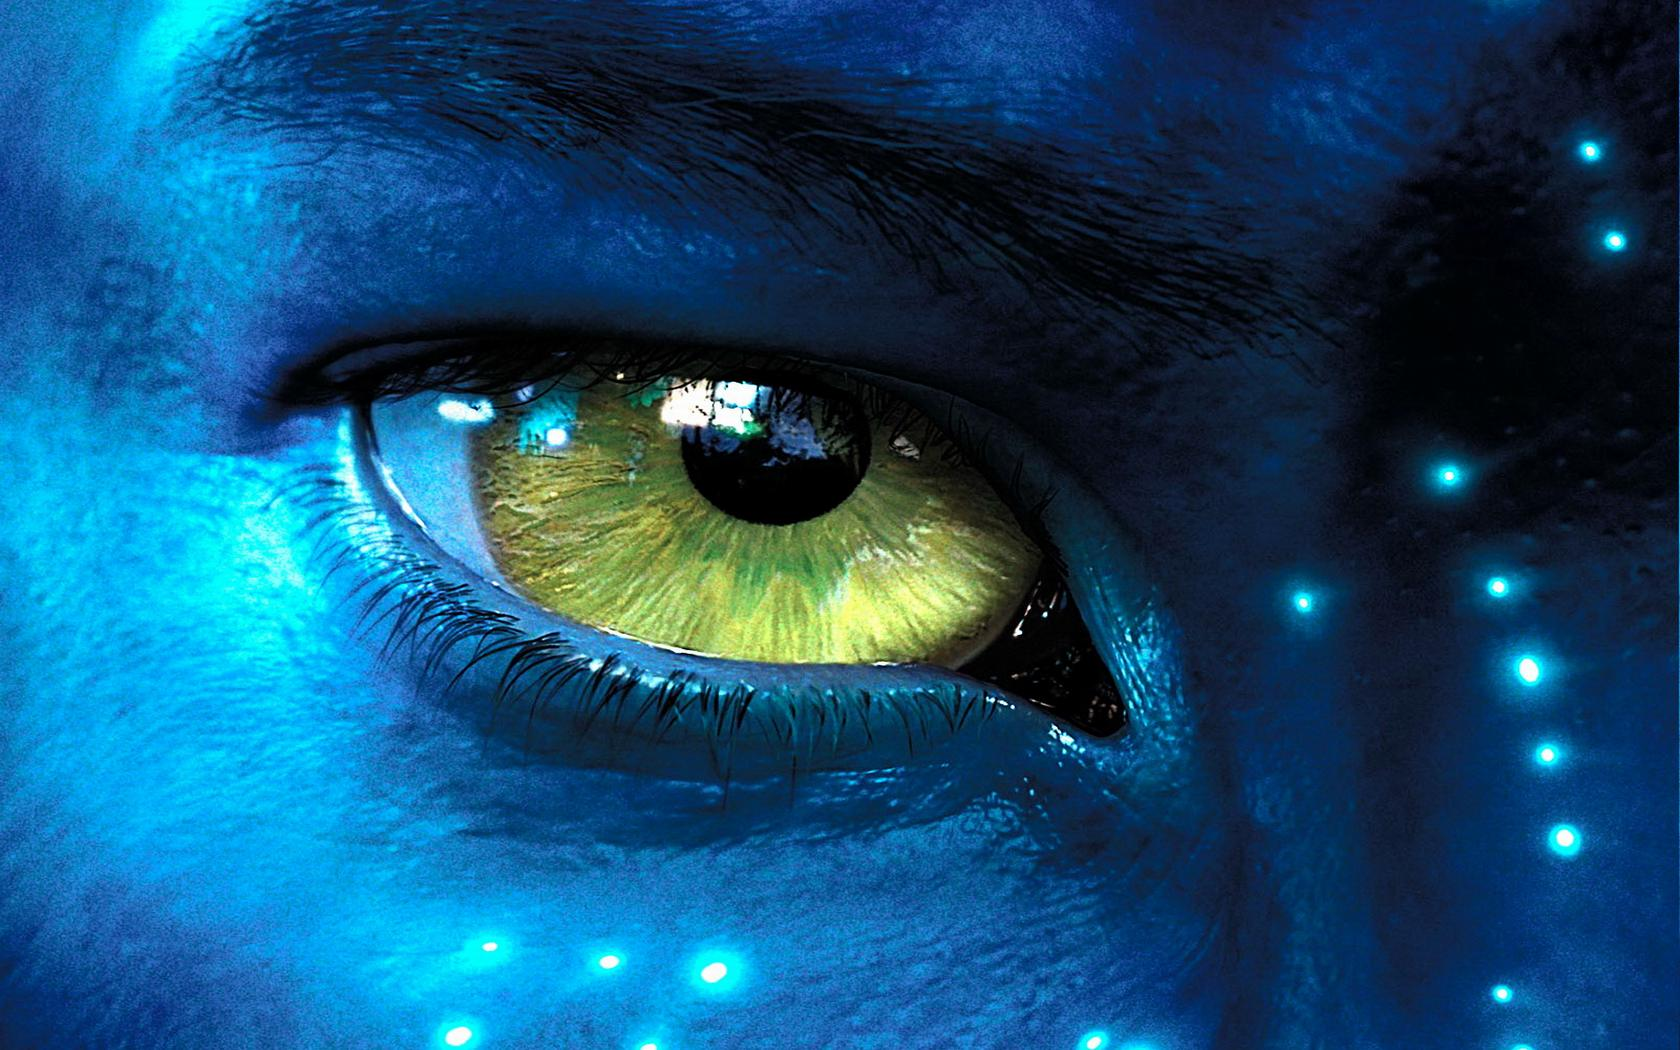 1680x1050 avatar eye desktop pc and mac wallpaper